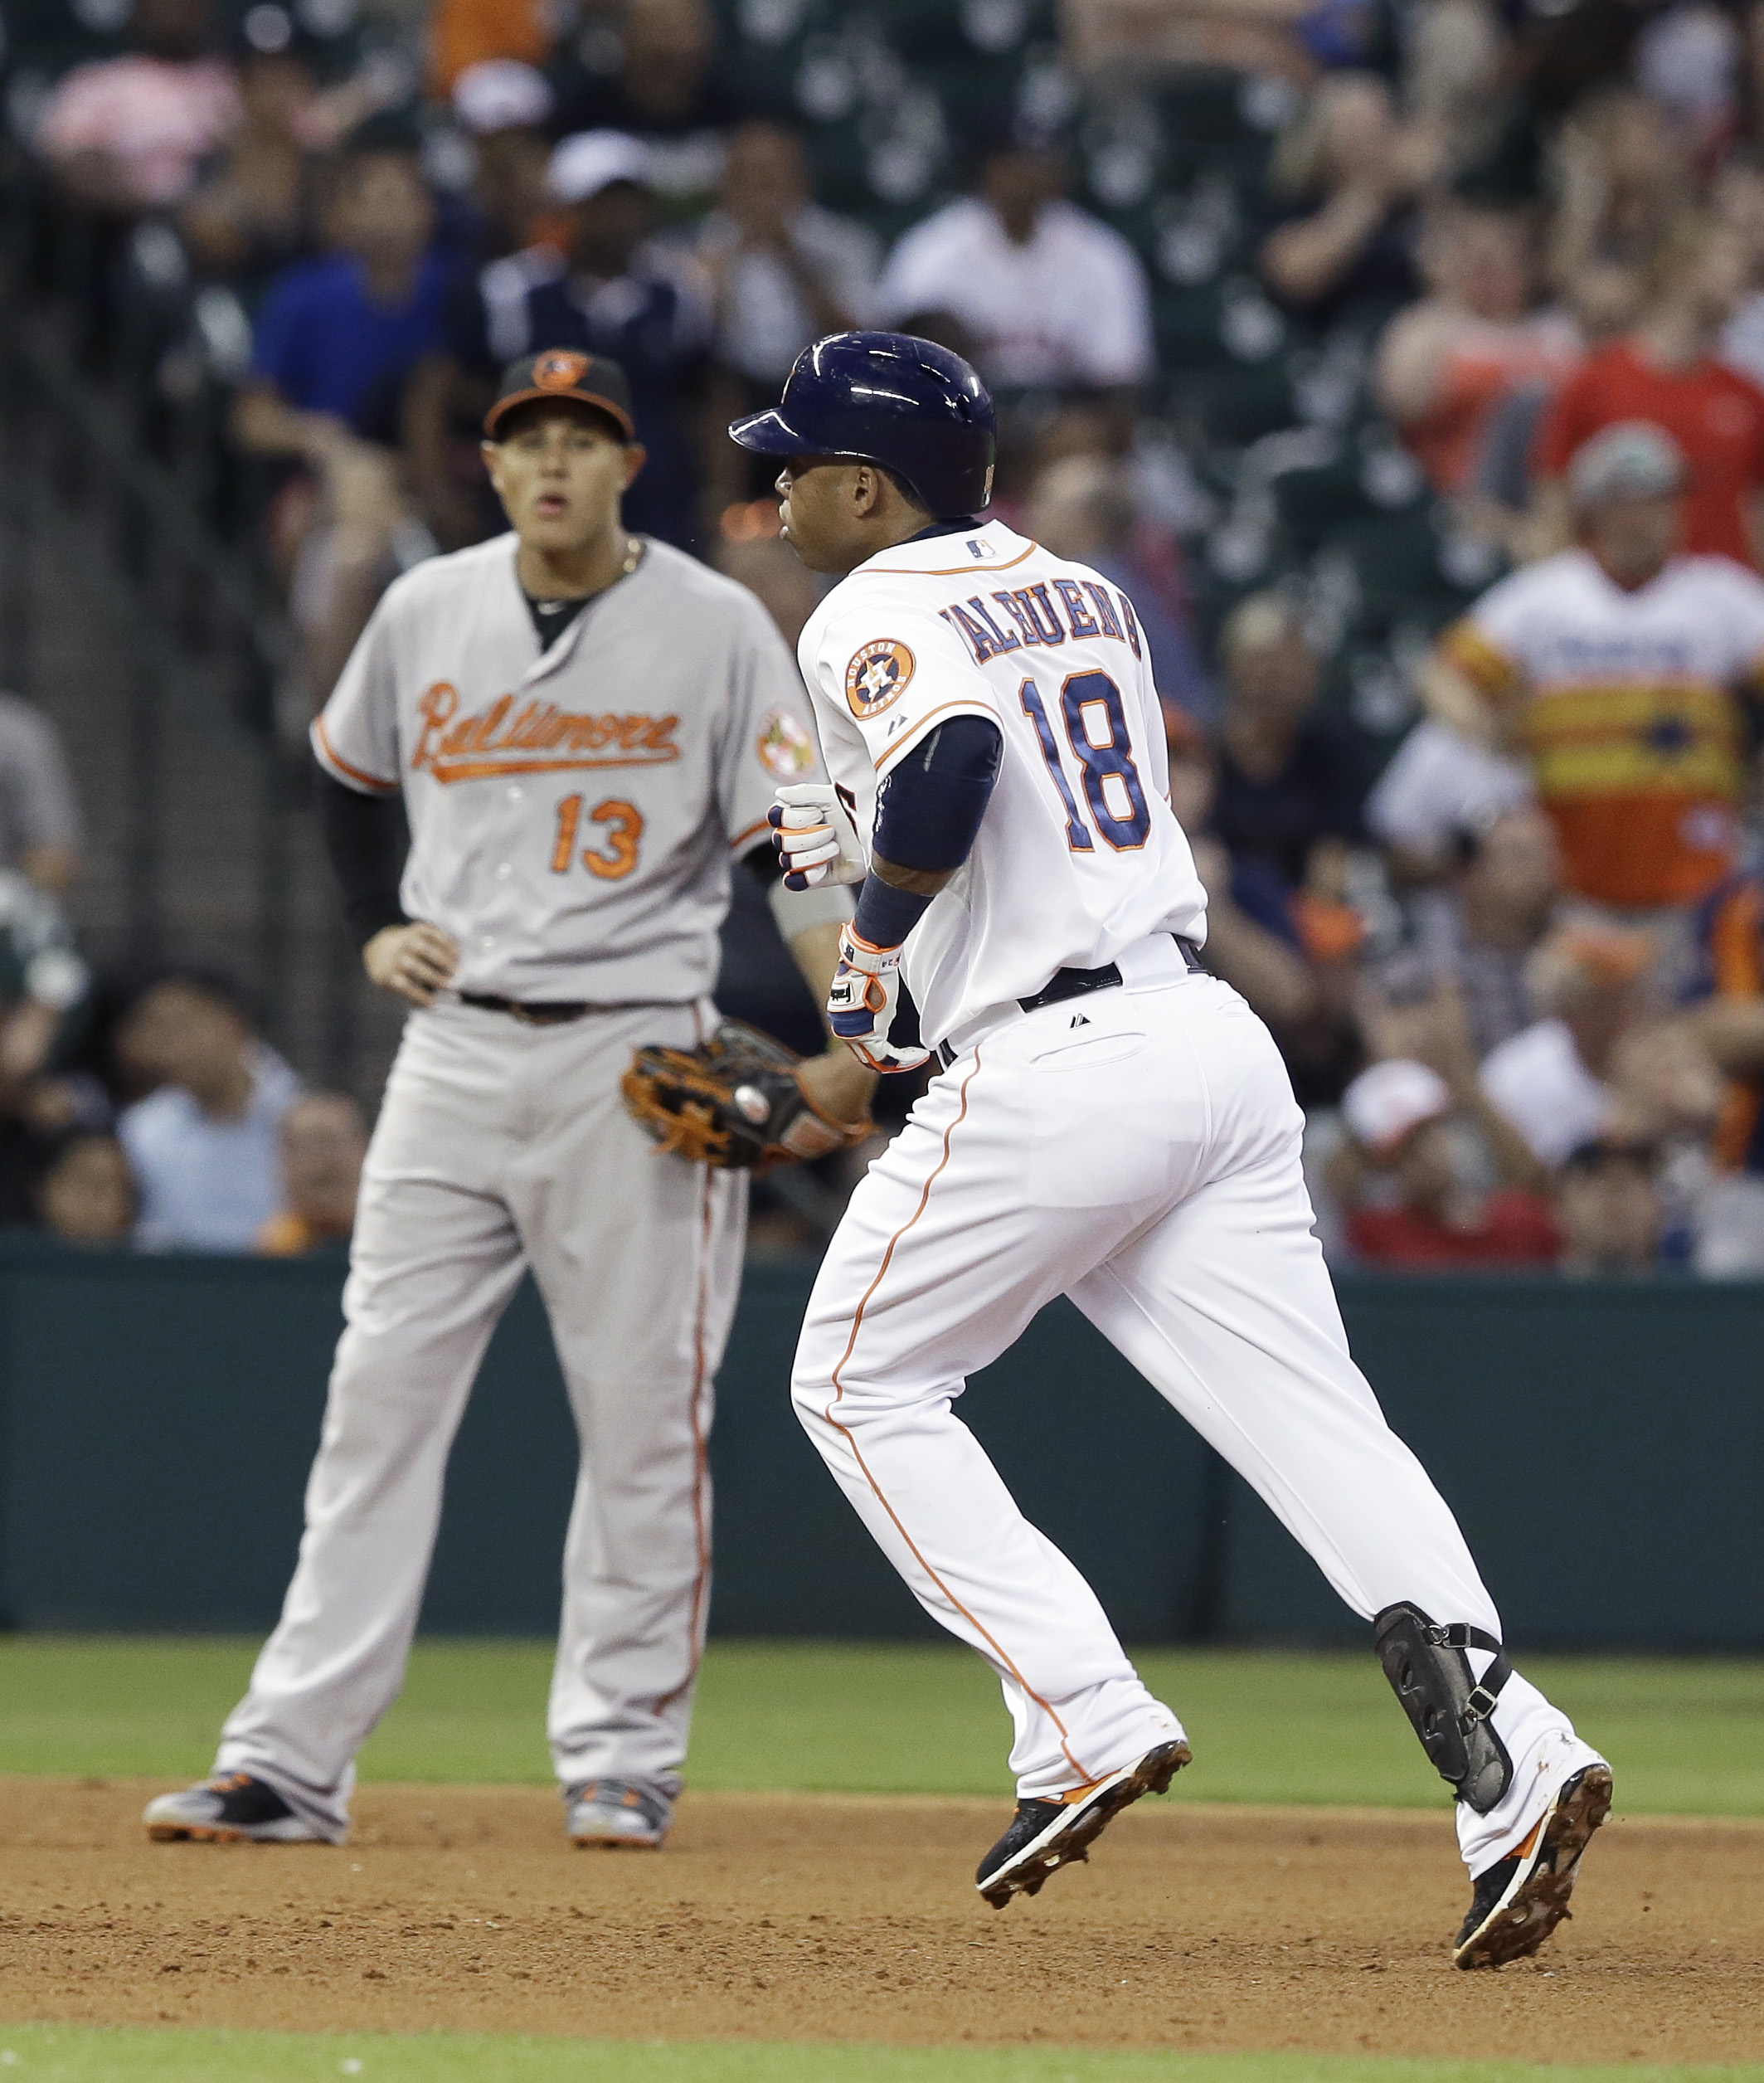 Houston Astros' Luis Valbuena (18) rounds the bases in front of Baltimore Orioles third baseman Manny Machado (13) on a solo homer in the fifth inning of a baseball game Monday, June 1, 2015, in Houston. (AP Photo/Pat Sullivan)